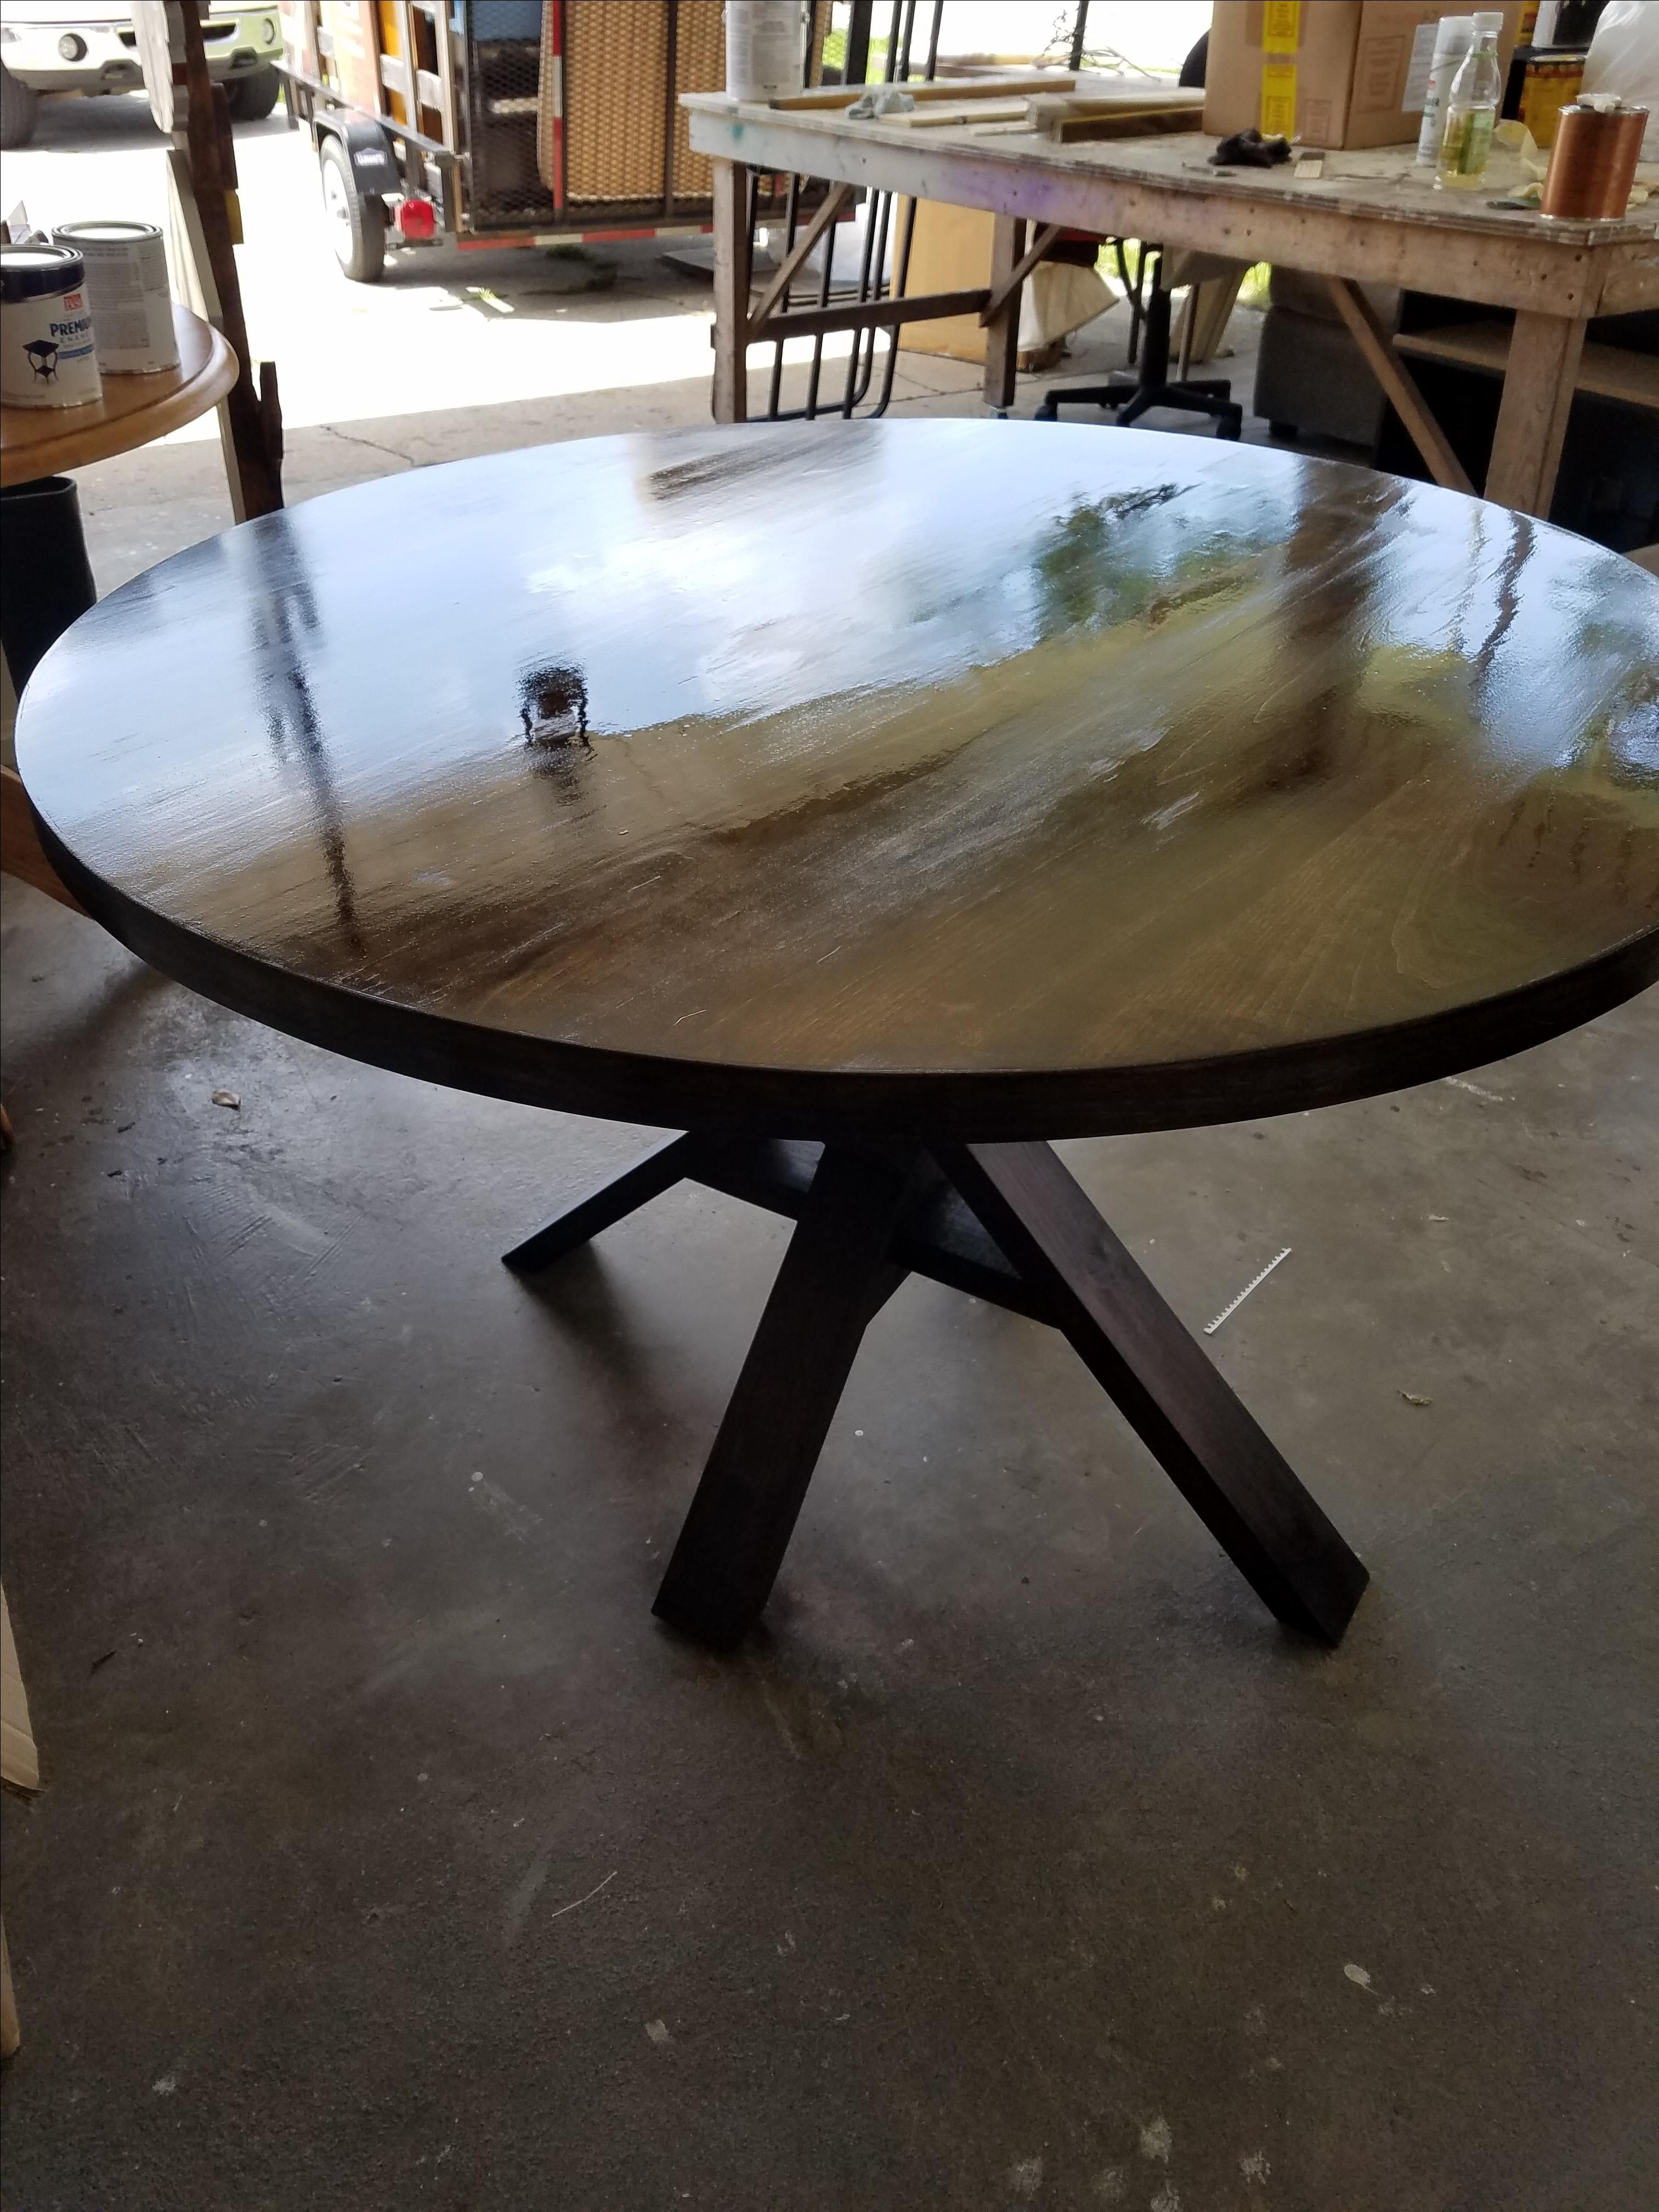 Peachy Custom Made 5 Foot Round Dining Table By Big Daddy Woodworks Download Free Architecture Designs Xoliawazosbritishbridgeorg